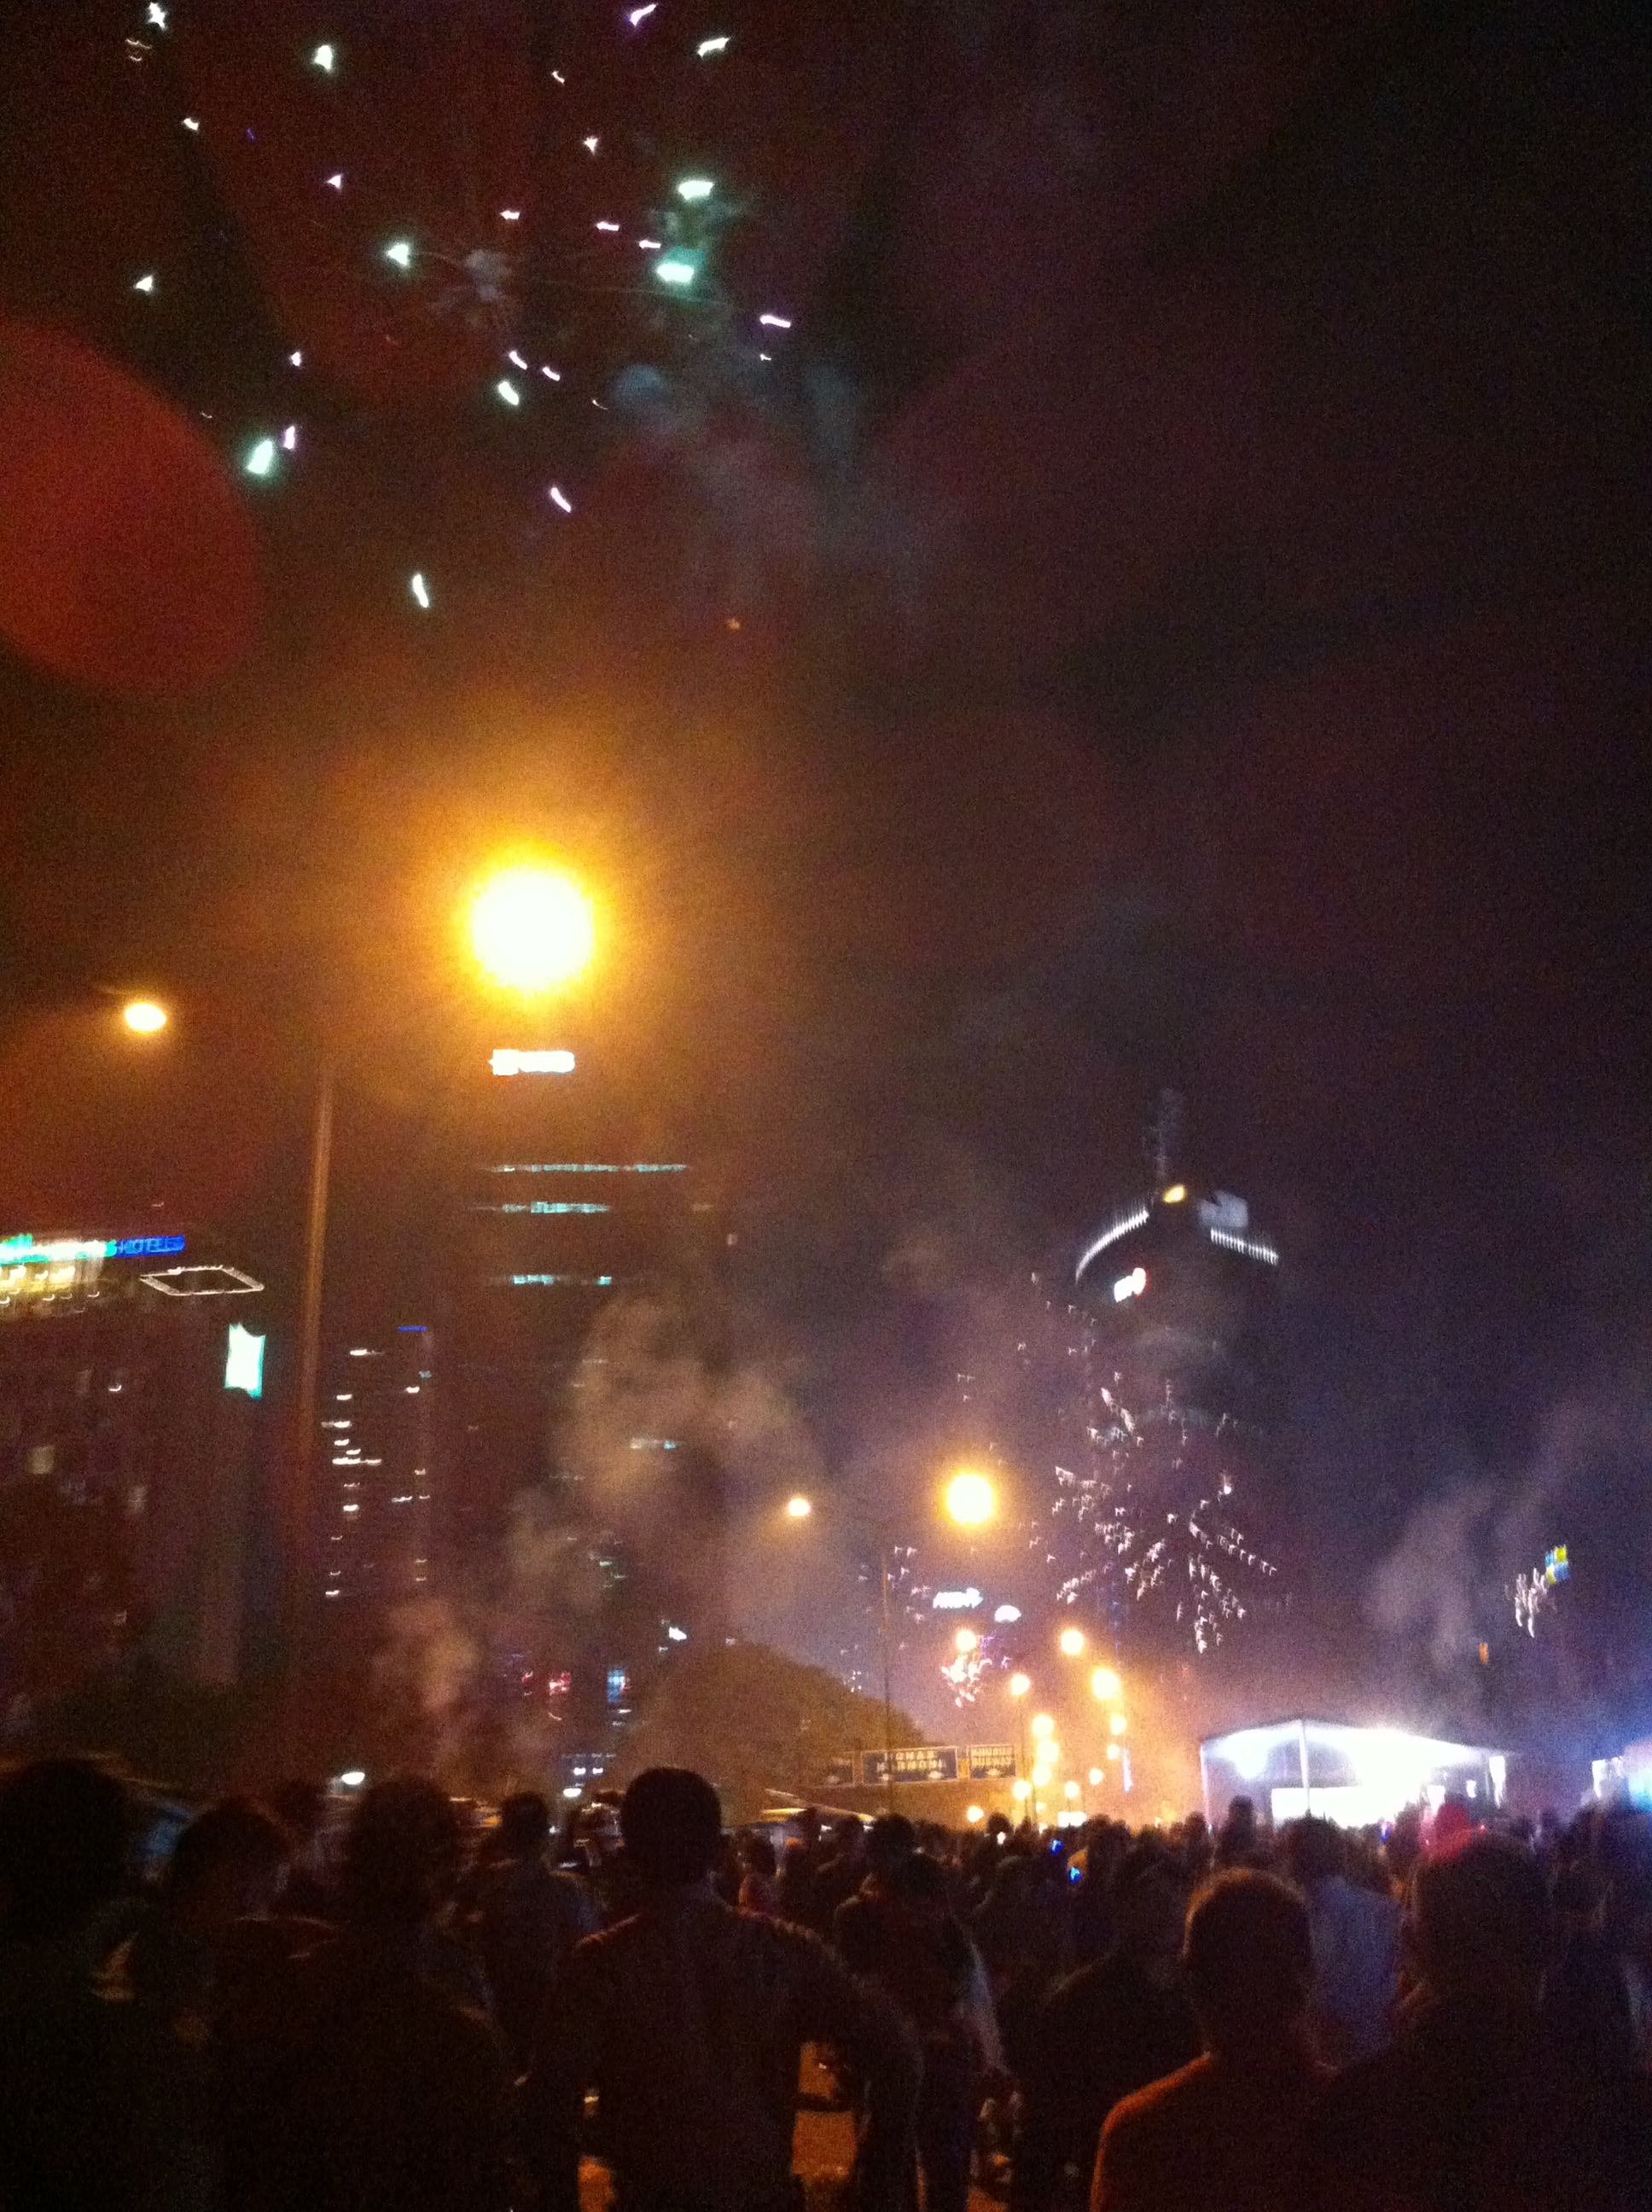 jakarta the whole jakarta was excited by celebrating the new year 2014 i could hear many many people blowing a toy bugle which you can get at street stalls voltagebd Image collections